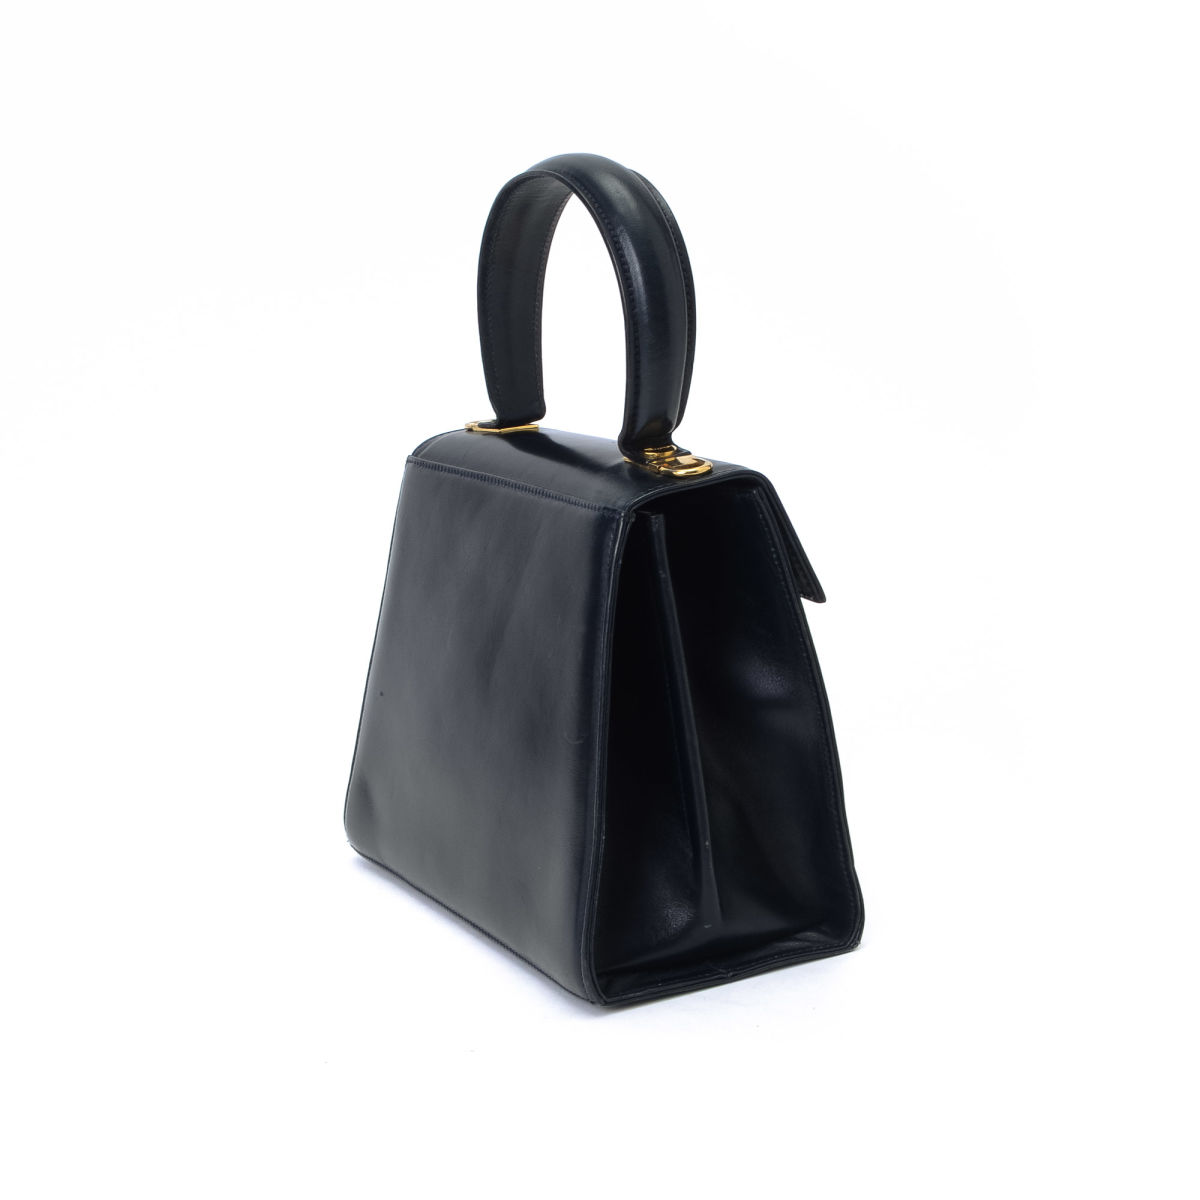 0ed7c1b193ab Gancini Top Handle Bag. Free Shipping. LXRandCo guarantees the authenticity  of this vintage Ferragamo Top Handle handbag. This classic handbag in navy  ...